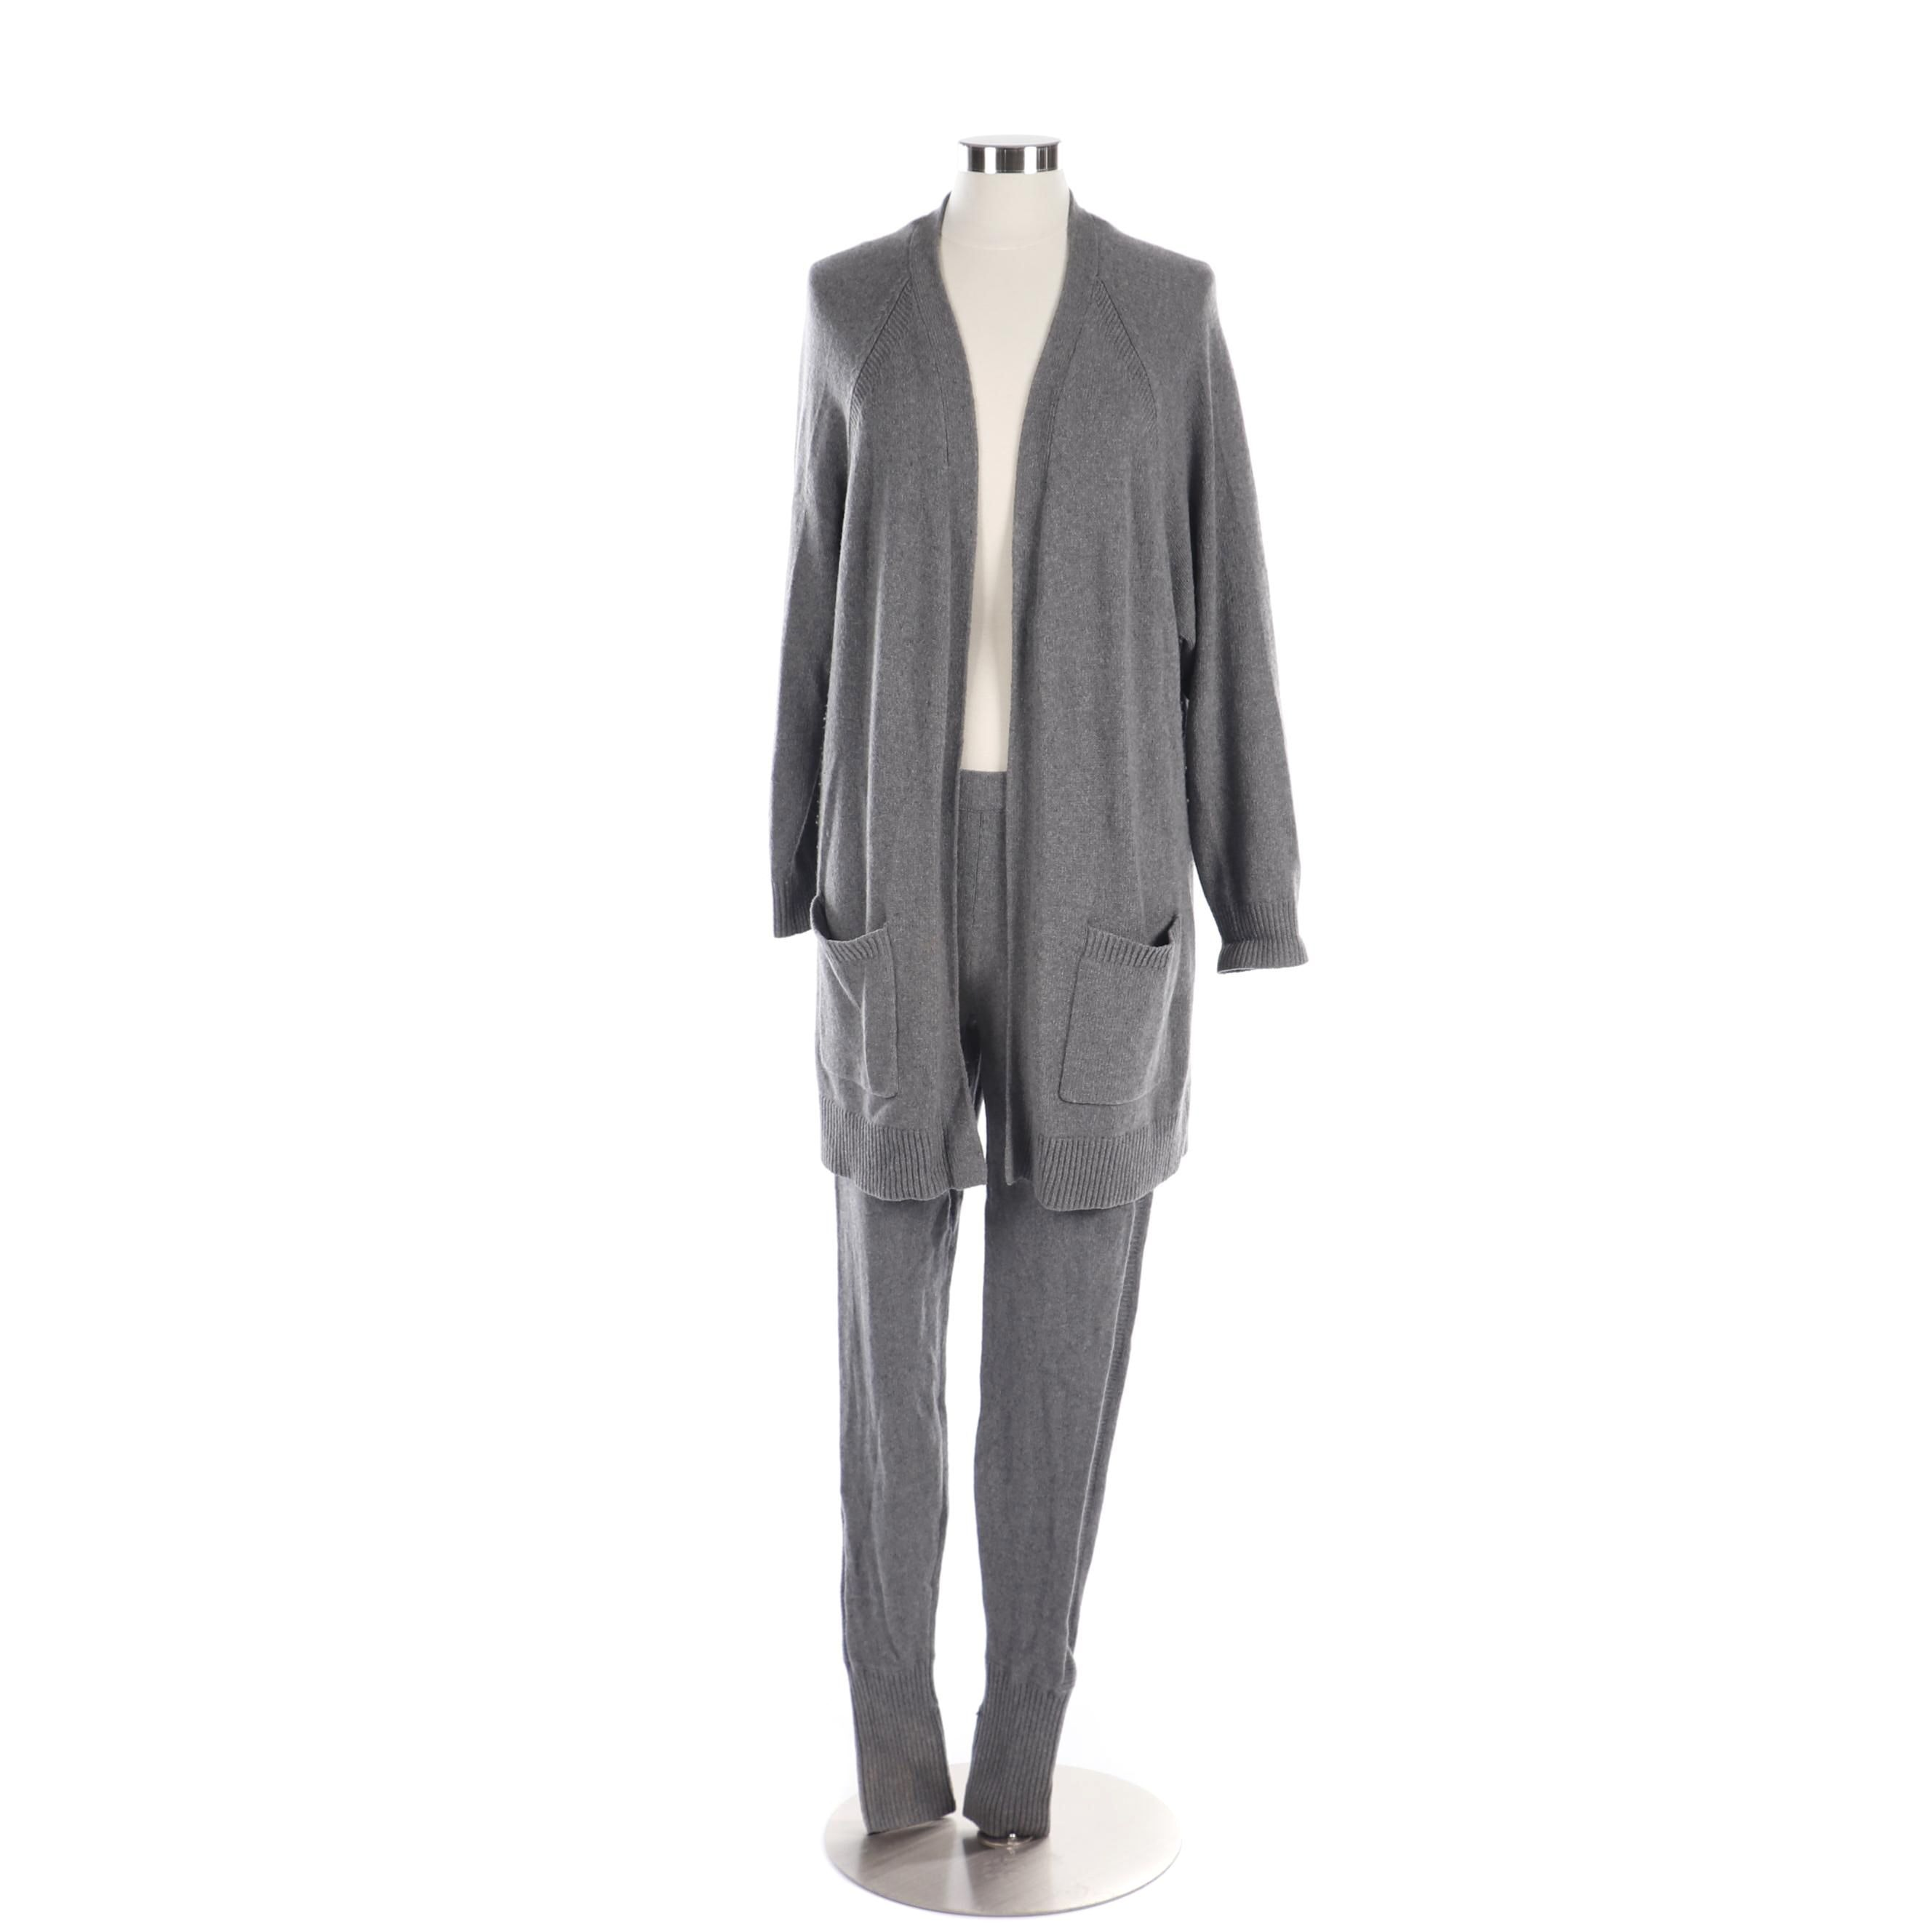 Women's Rag & Bone Grey Cashmere and Wool Blend Knit Cardigan and Leggings